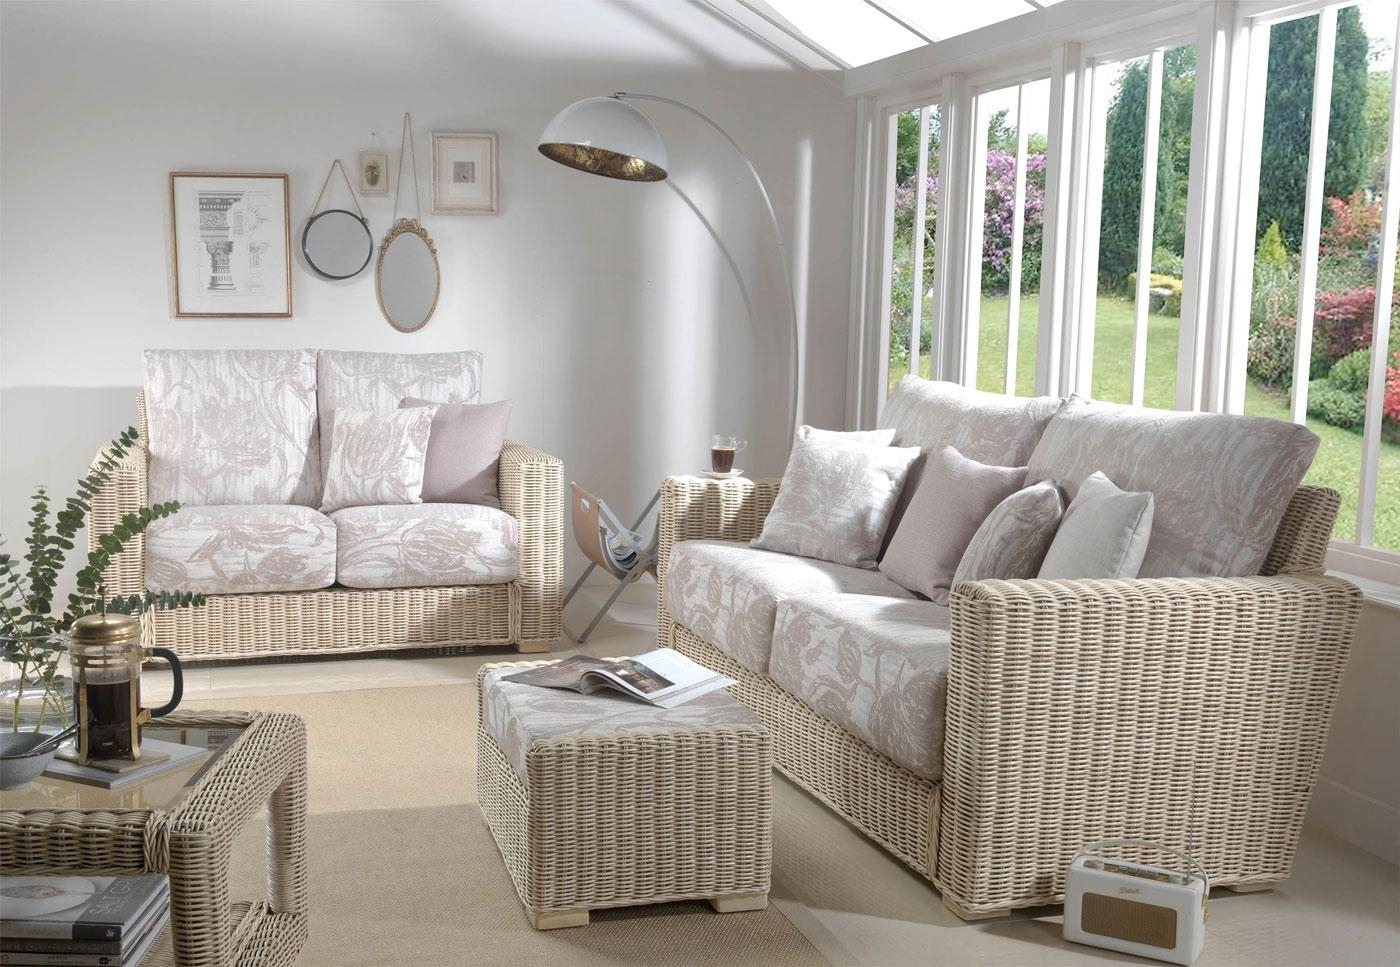 Indoor Can Furniture And Accessories – Spa Home Improvements With Regard To White Cane Sofas (View 22 of 25)